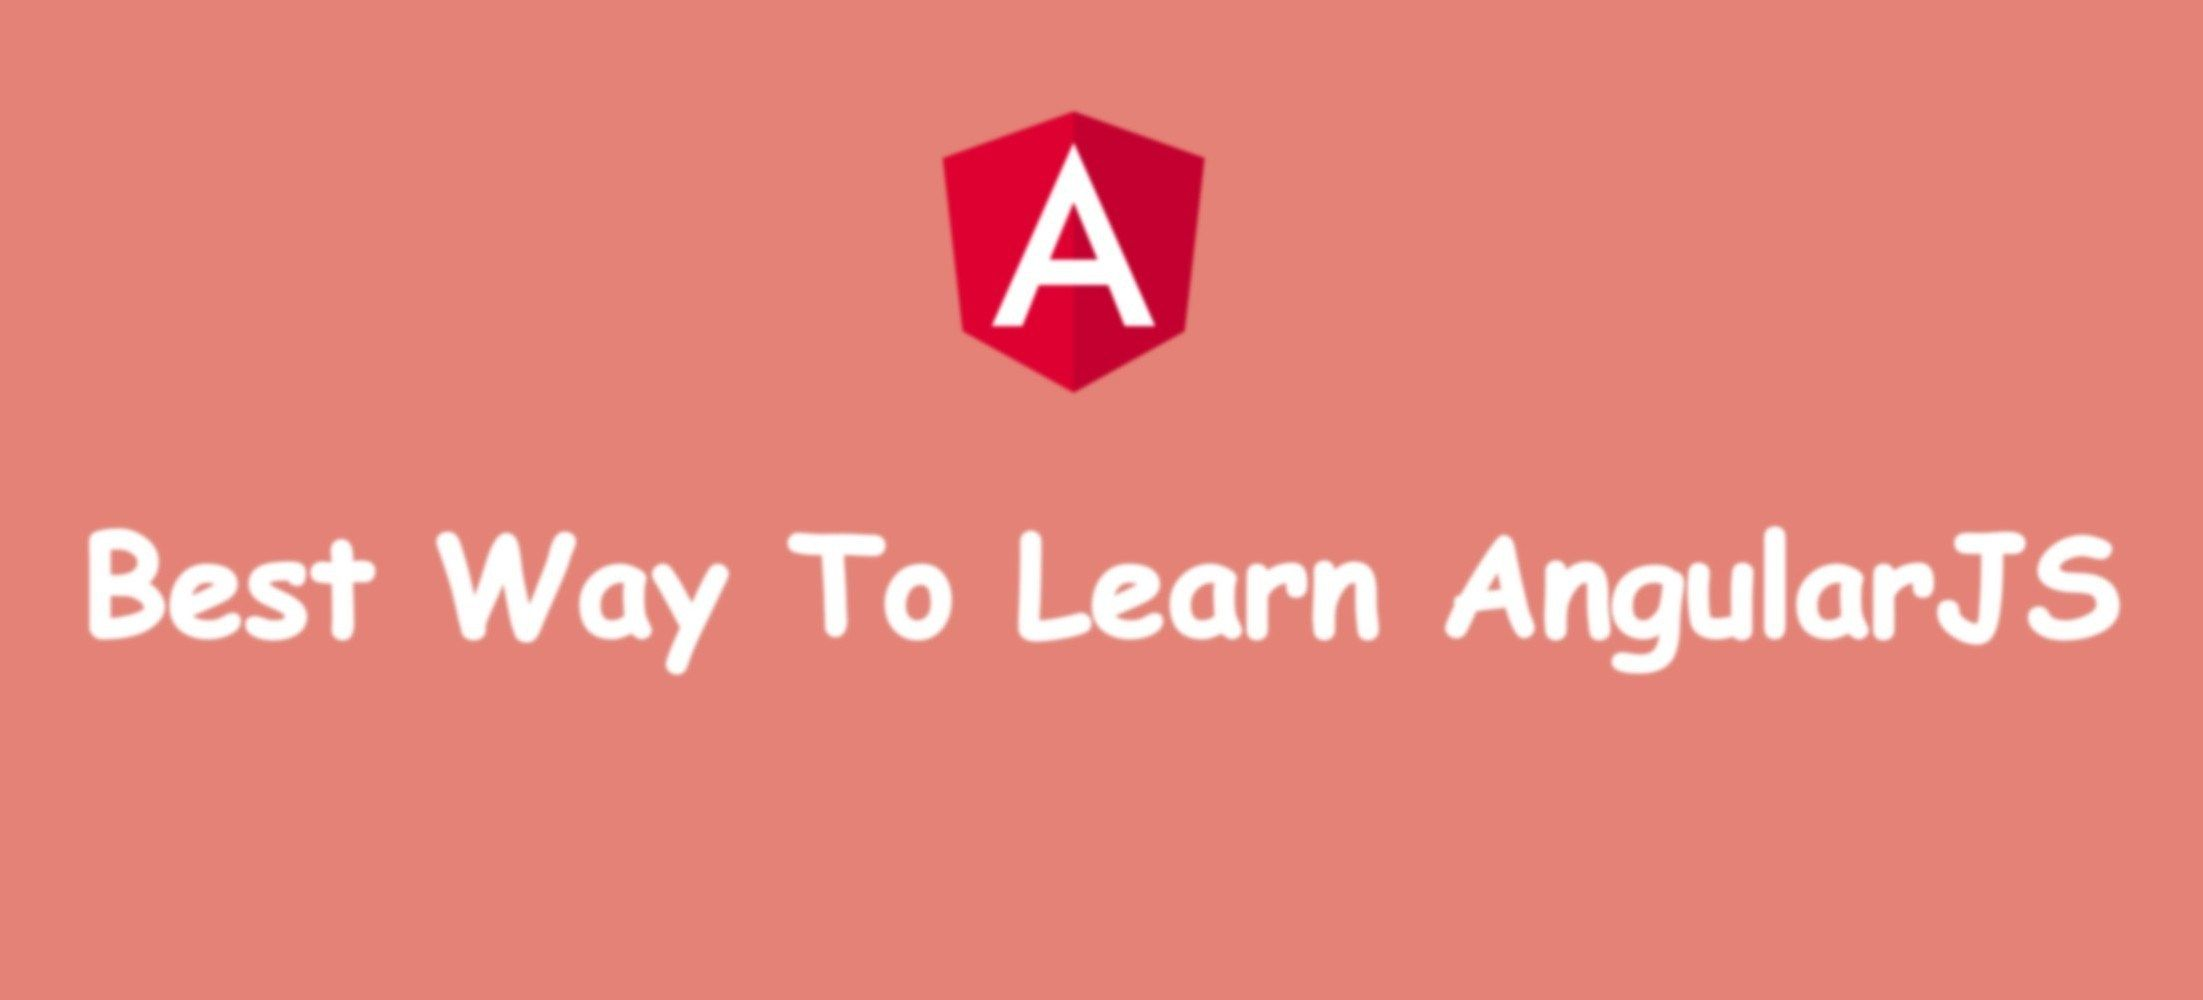 AngularJS is an open-source Front-end JavaScript framework. Its goal is to enhancebrowser-based applications with Model View Controller (MVC) capability and scale-back the numberof JavaScript requiredto formweb applications useful. These kindof apps also are referred toas Single-Page Applications. Itisa well-liked JavaScript framework accustomed build powerful,